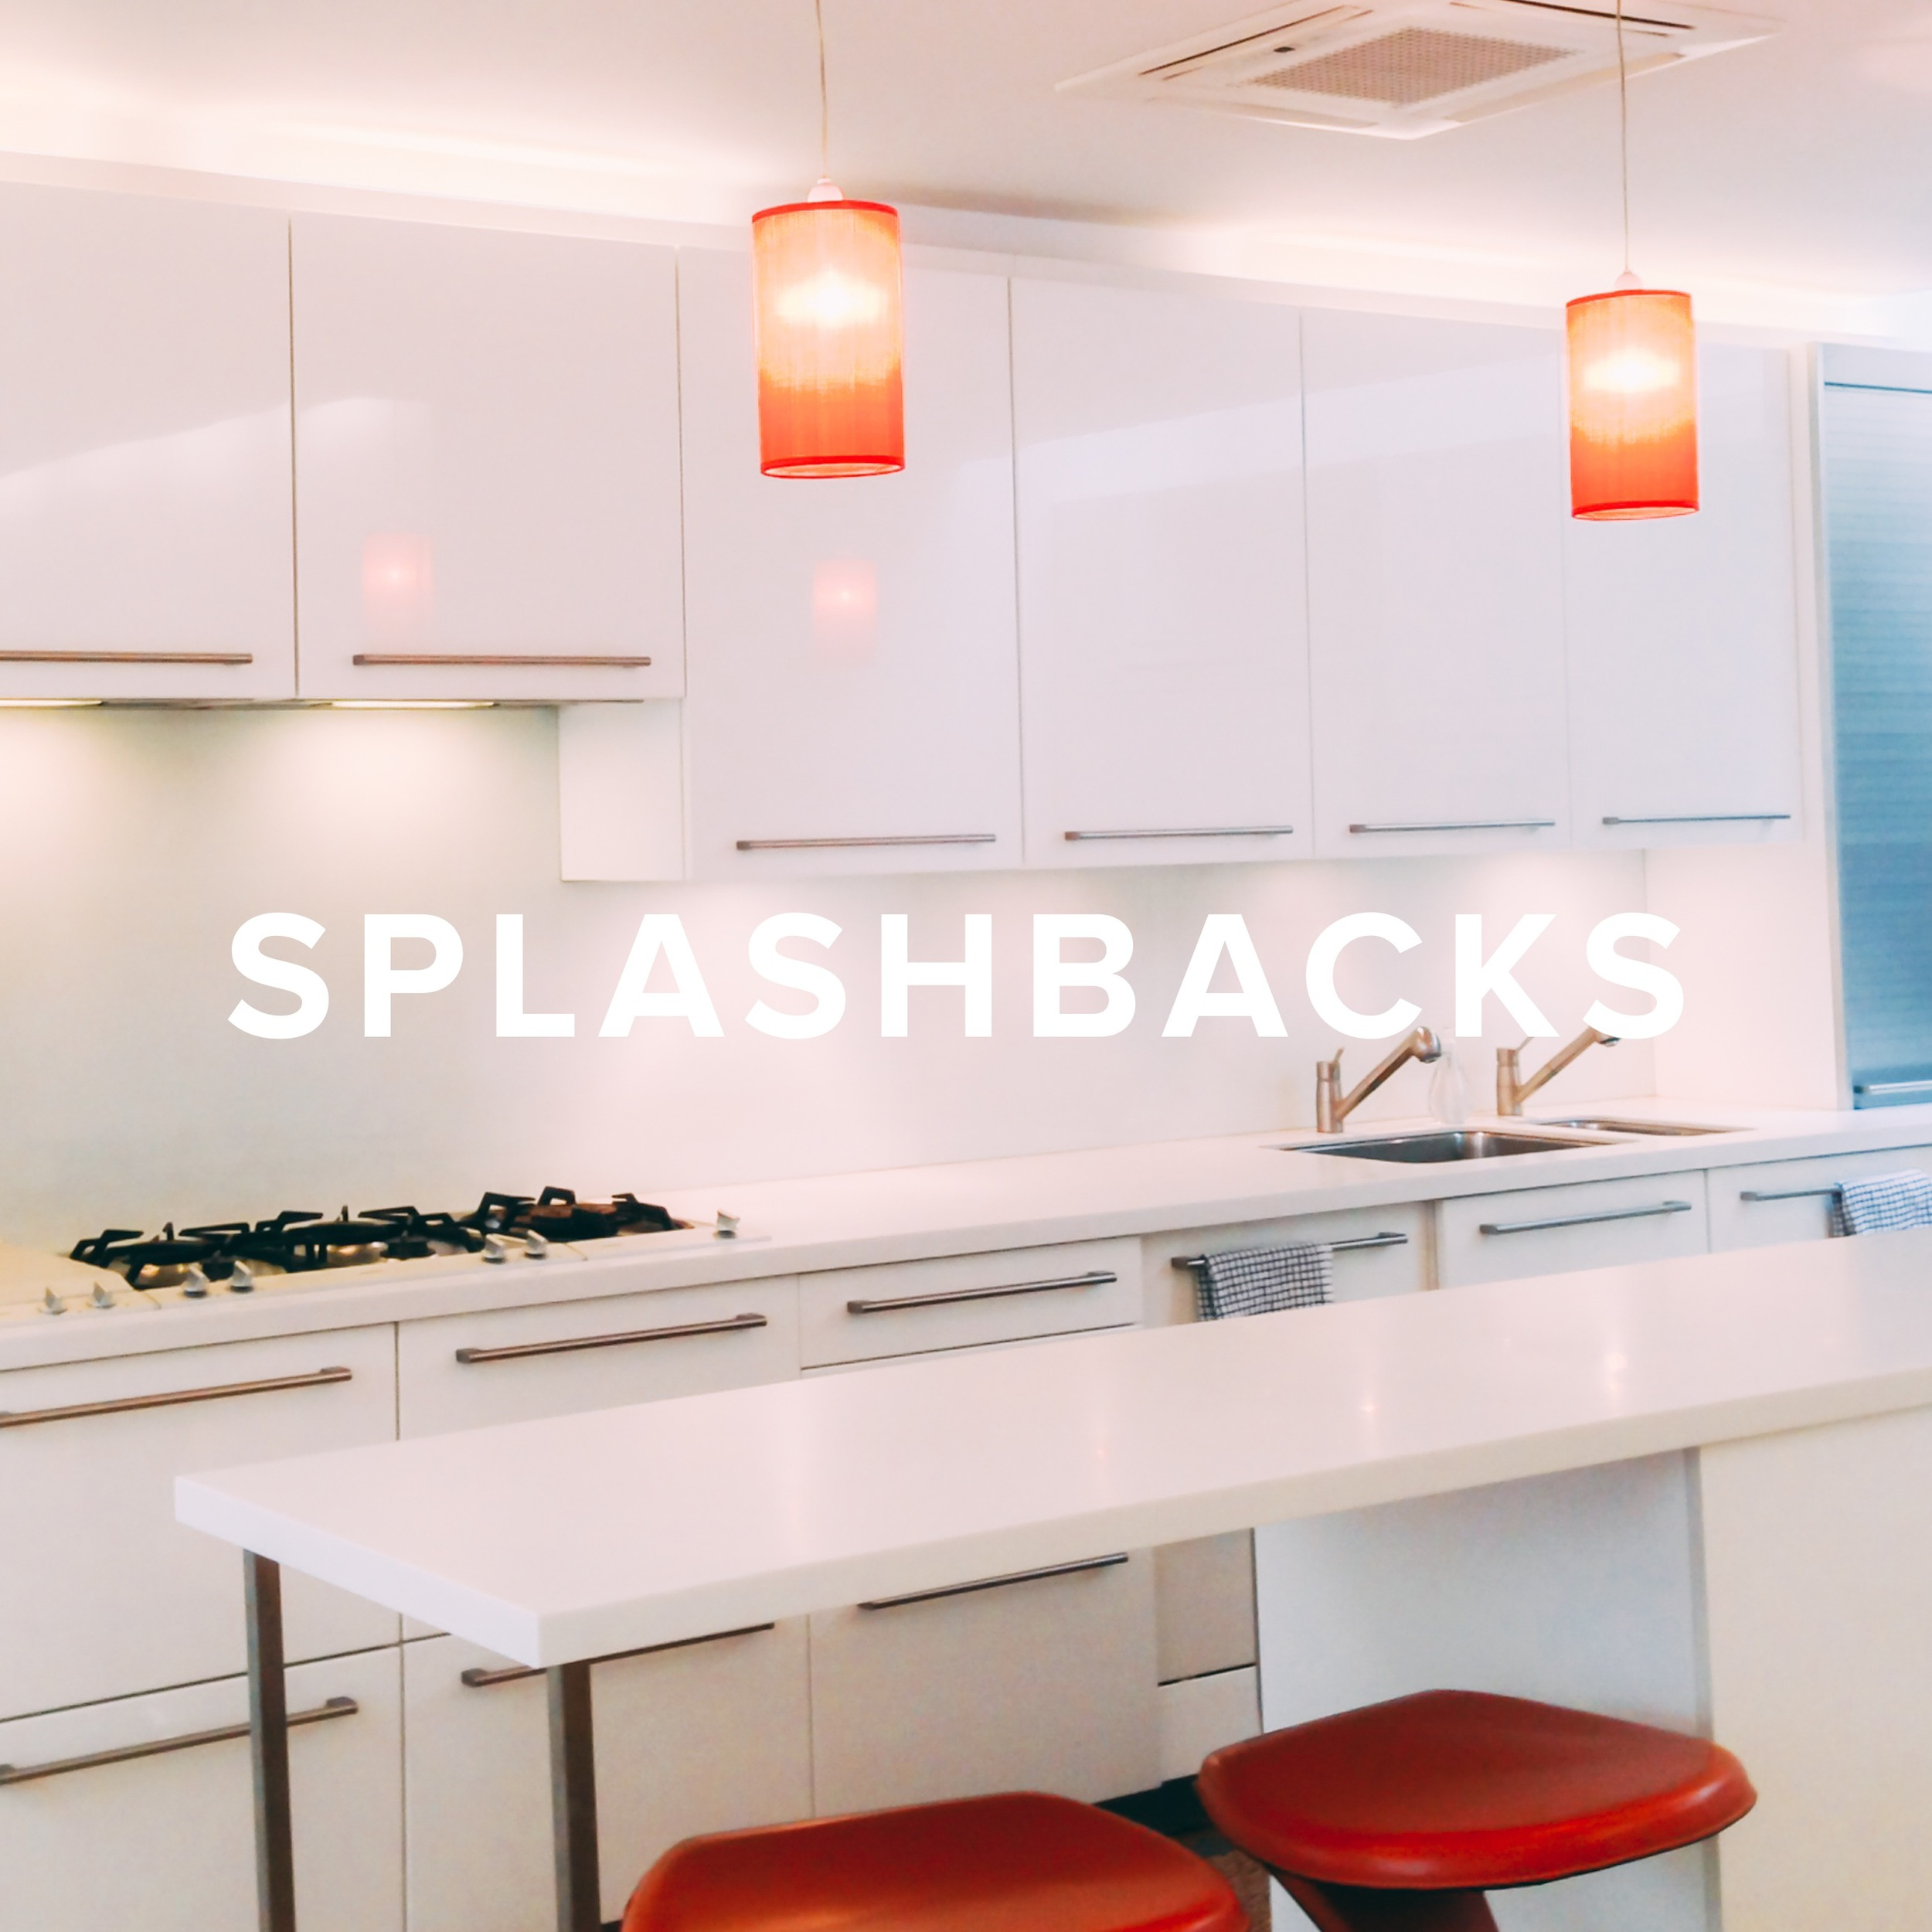 SPLASHBACKS.jpg